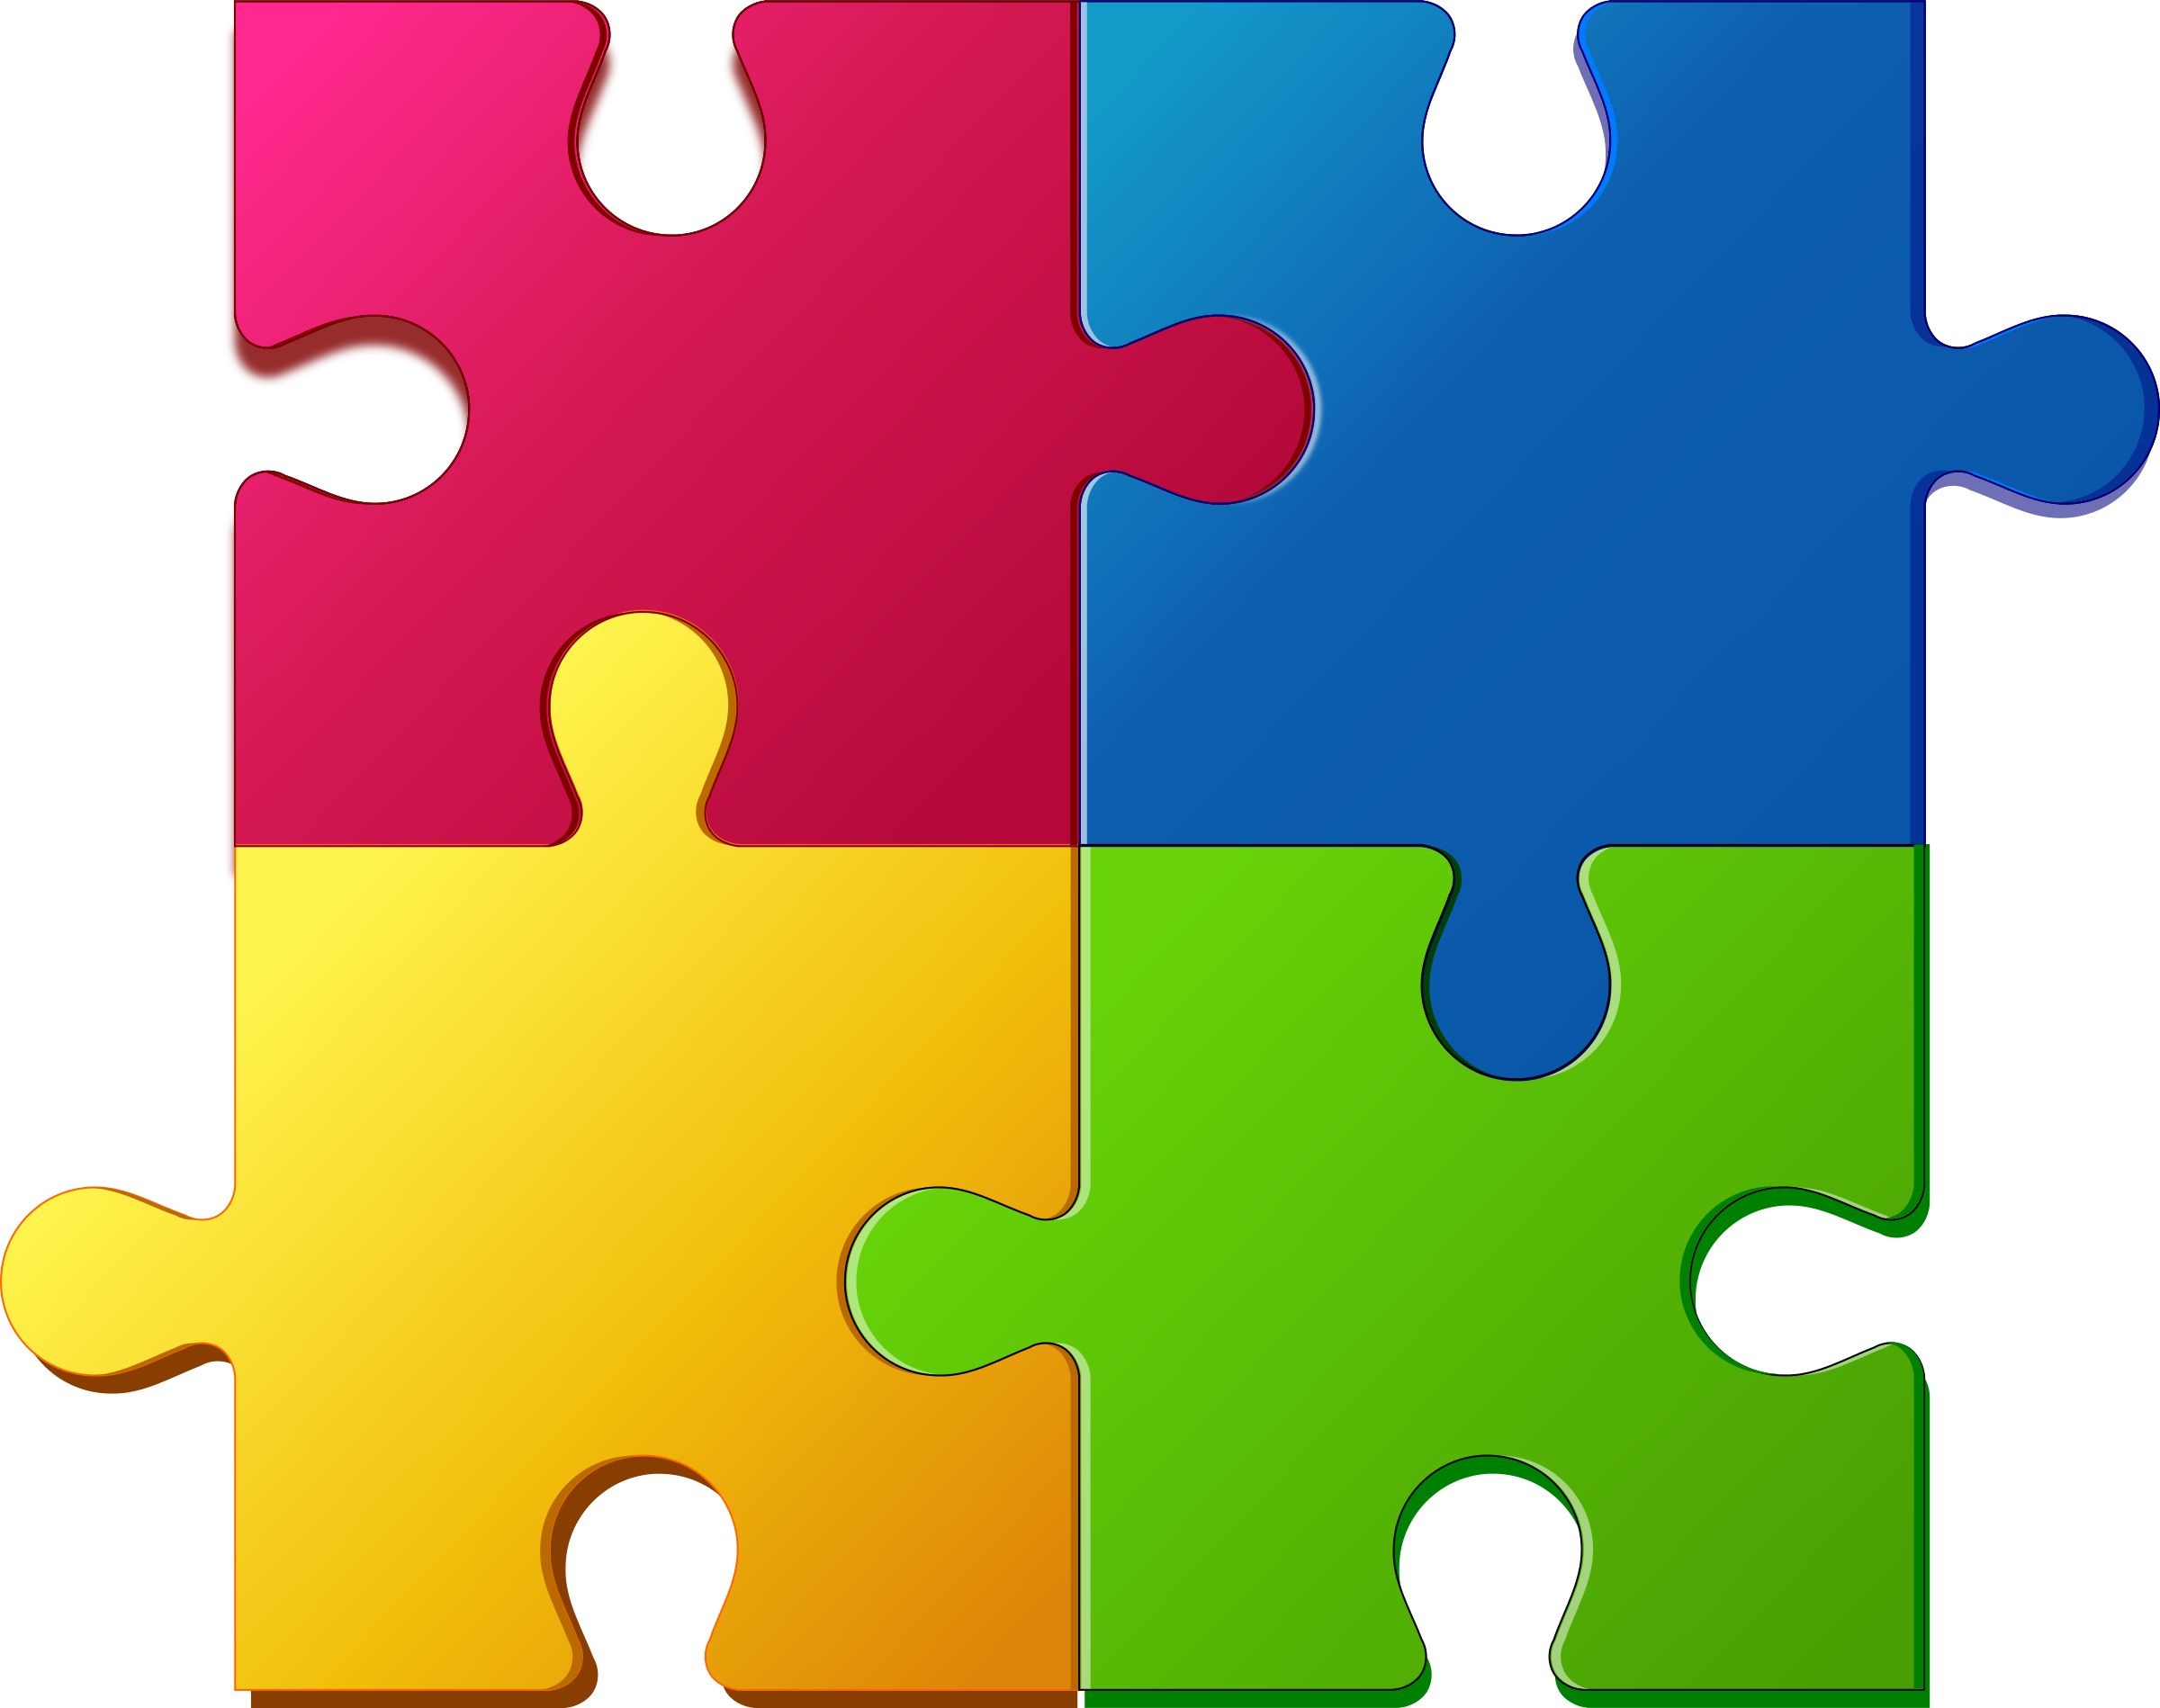 clip royalty free stock Puzzles clipart. Jigsaw puzzle big image.